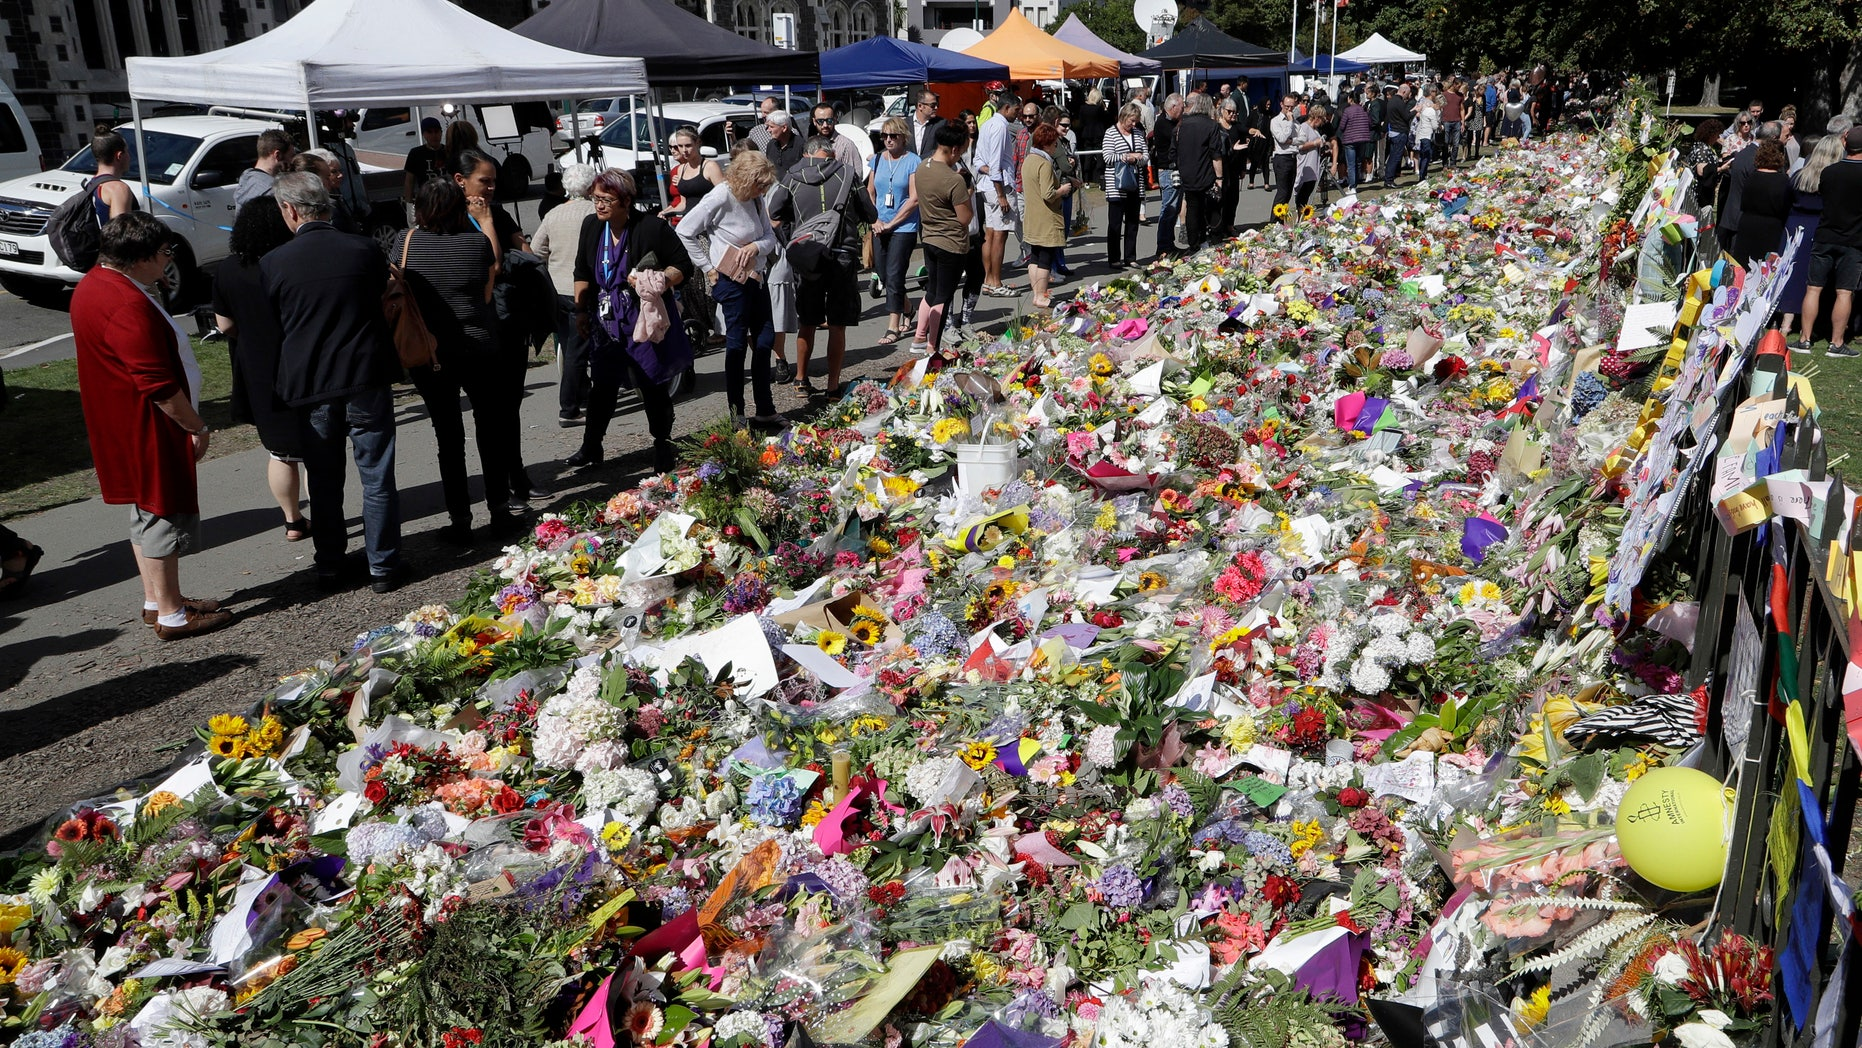 A man who once visited the rifle club where the New Zealand mass shooting suspect attended says he warned police about the shocking and extremist views of members there years ago, but nothing was done. Pictured is a memorial to the victims of Friday's shooting in Christchurch